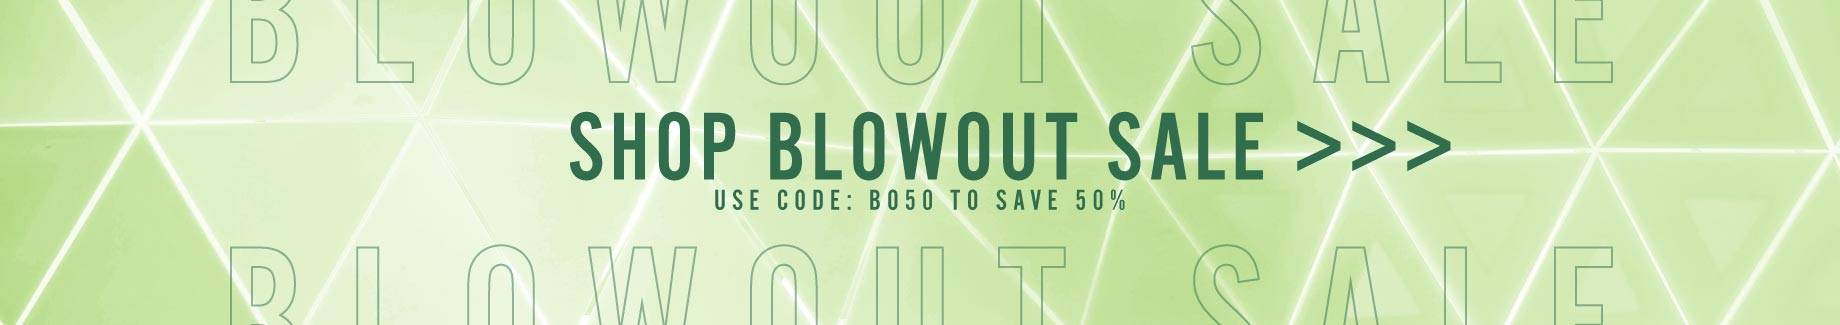 Shop Blowout Sale | Use code: BO50 To Save 50%